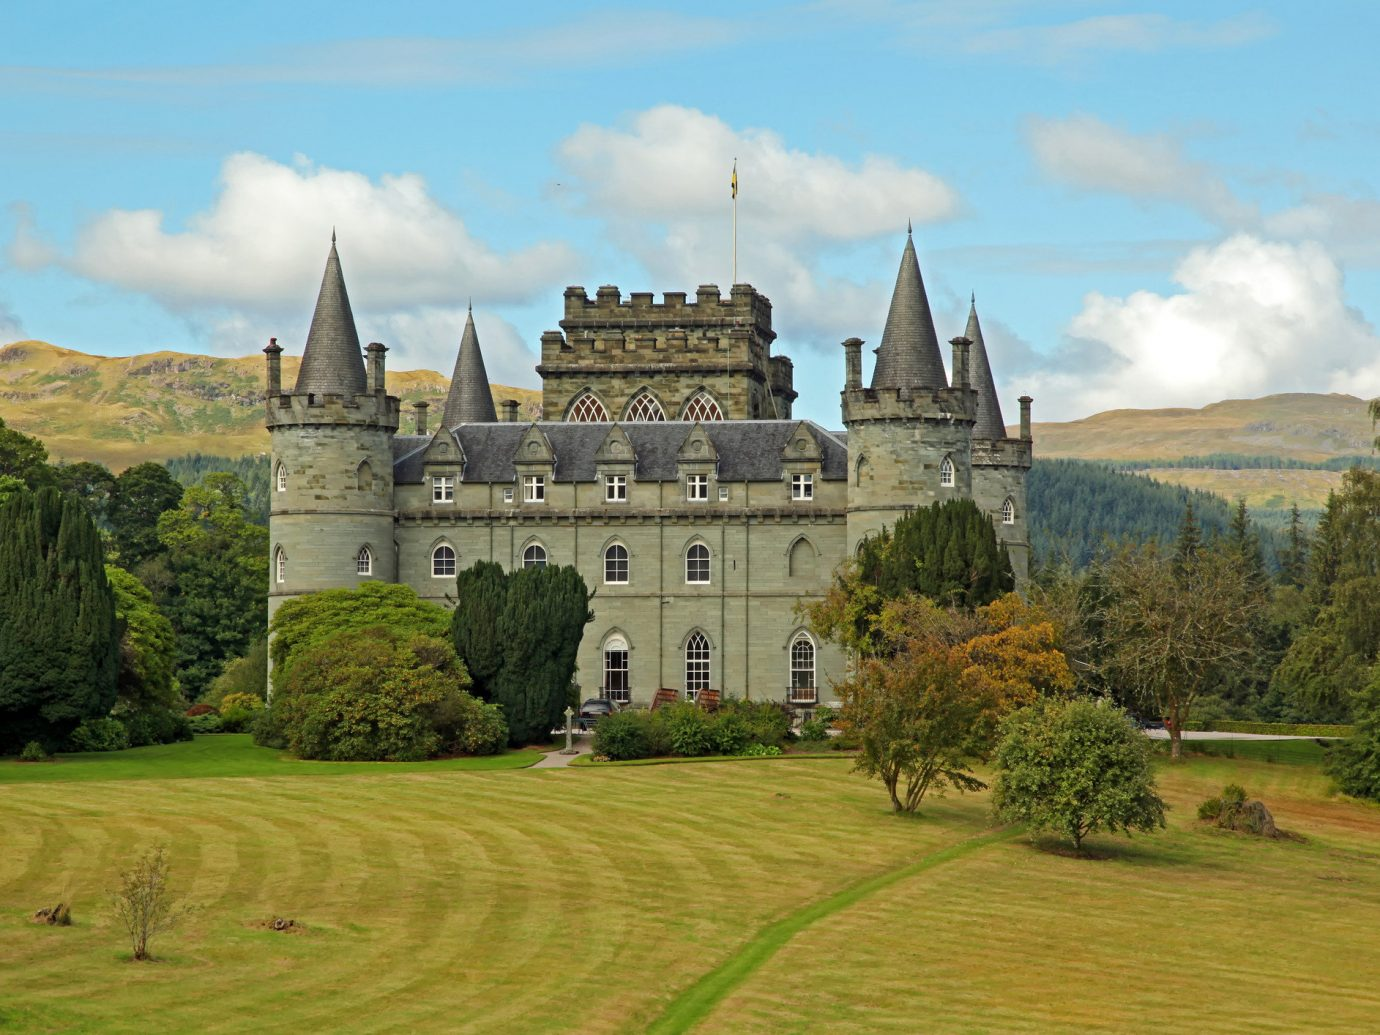 Landmarks Offbeat grass sky outdoor building stately home château castle estate highland national trust for places of historic interest or natural beauty medieval architecture tree mansion manor house mount scenery historic site old landscape field meadow plant stone surrounded lush